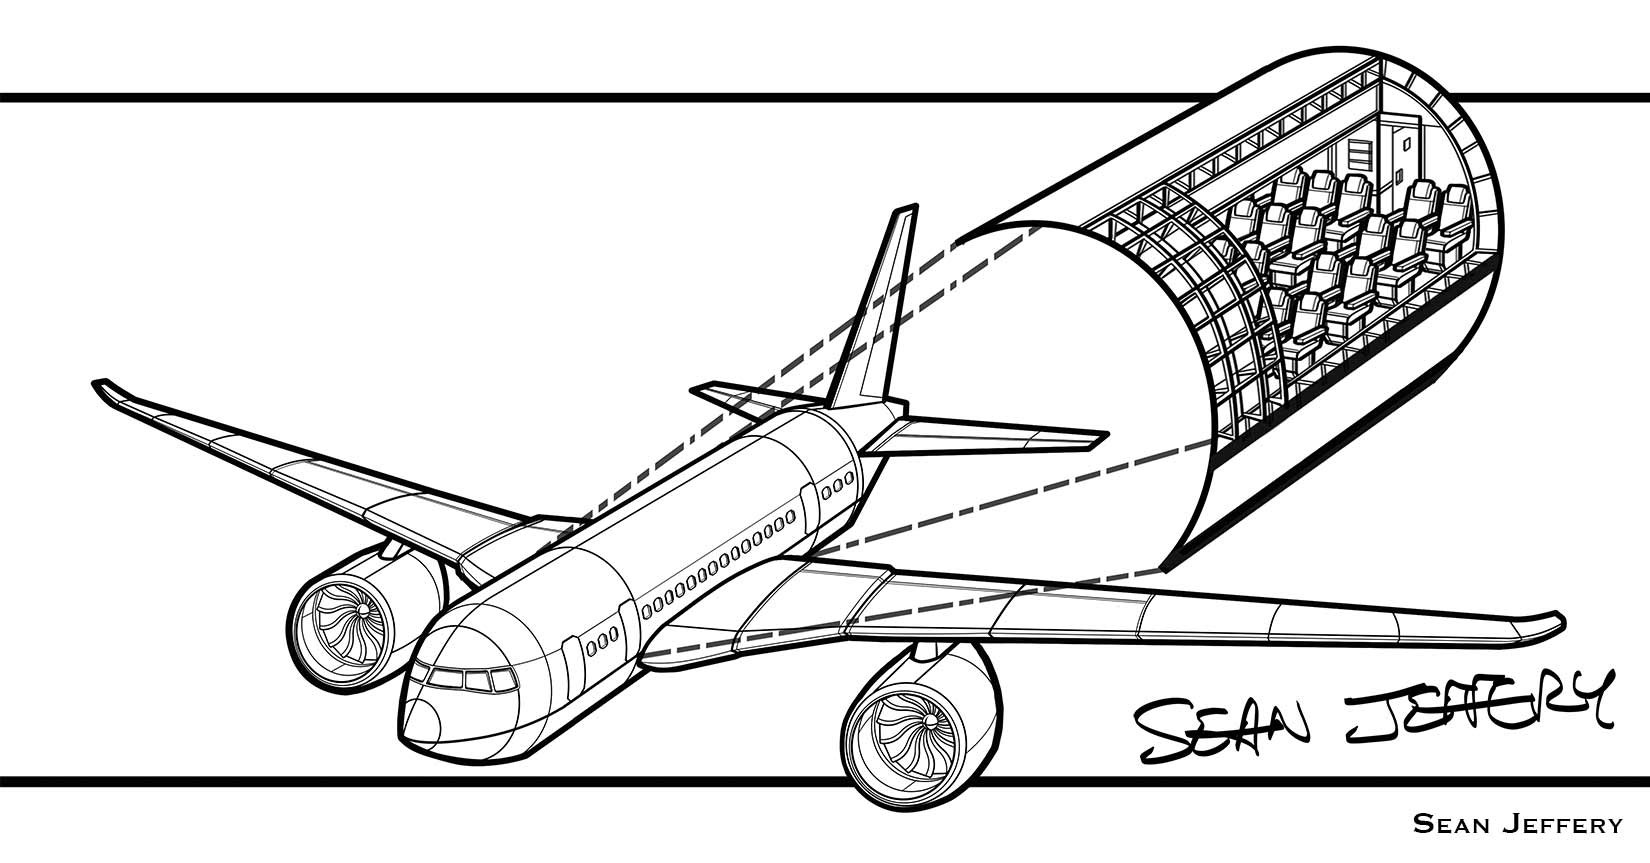 boeing 777 coloring page boeing 767 400er coloring page free printable coloring pages page 777 coloring boeing